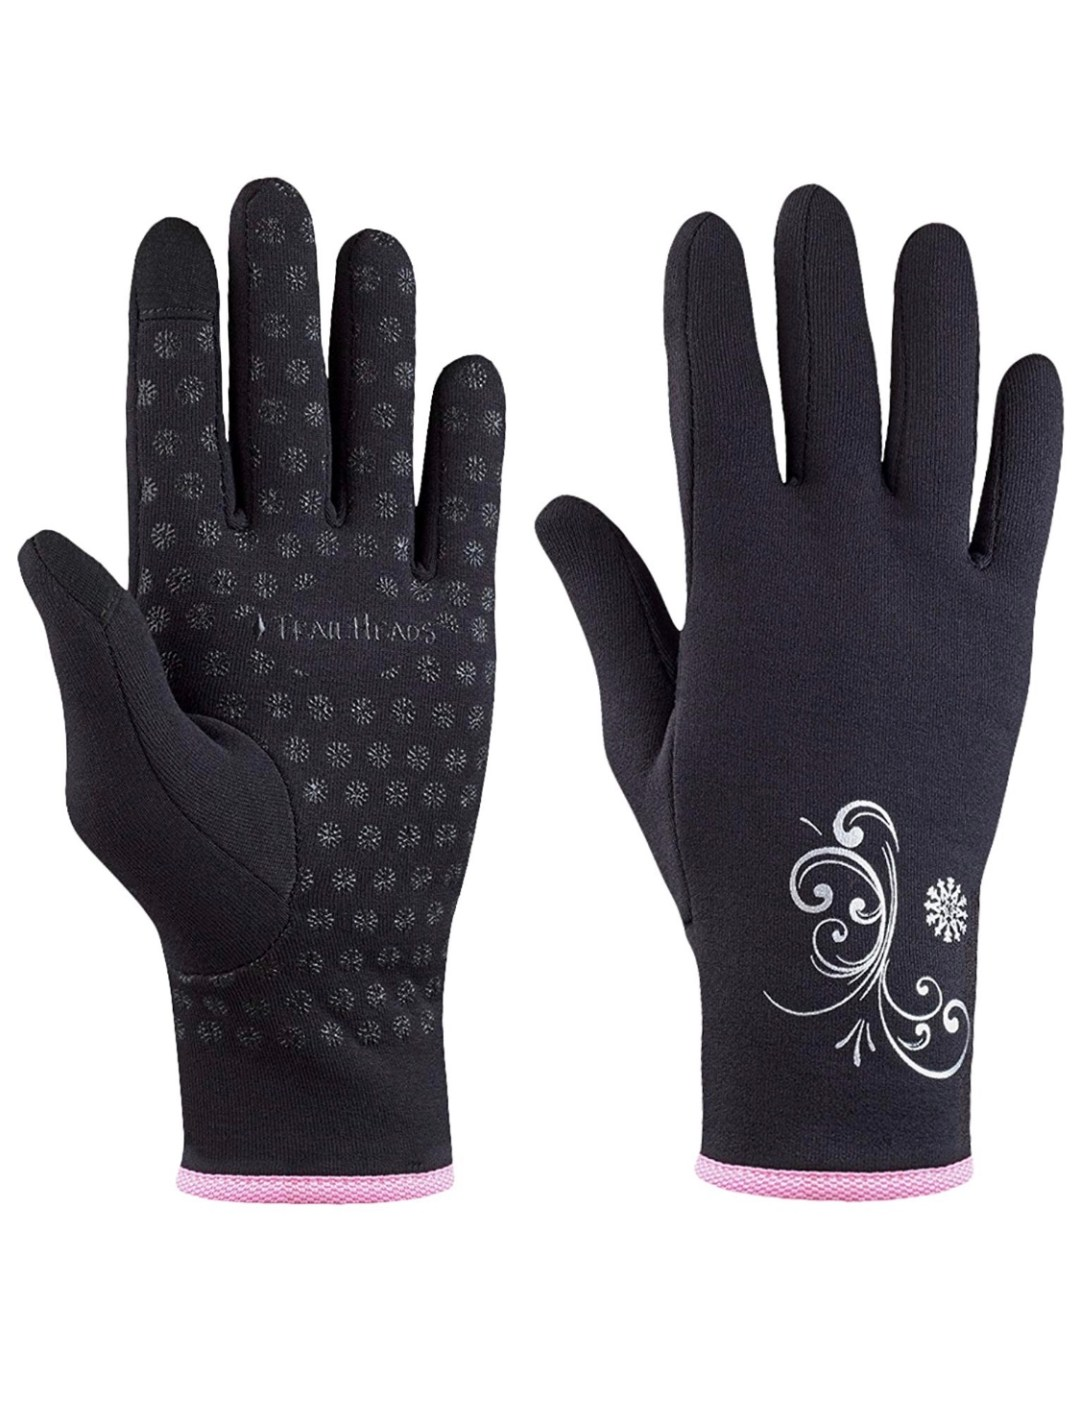 Women's Touch Screen Running Gloves